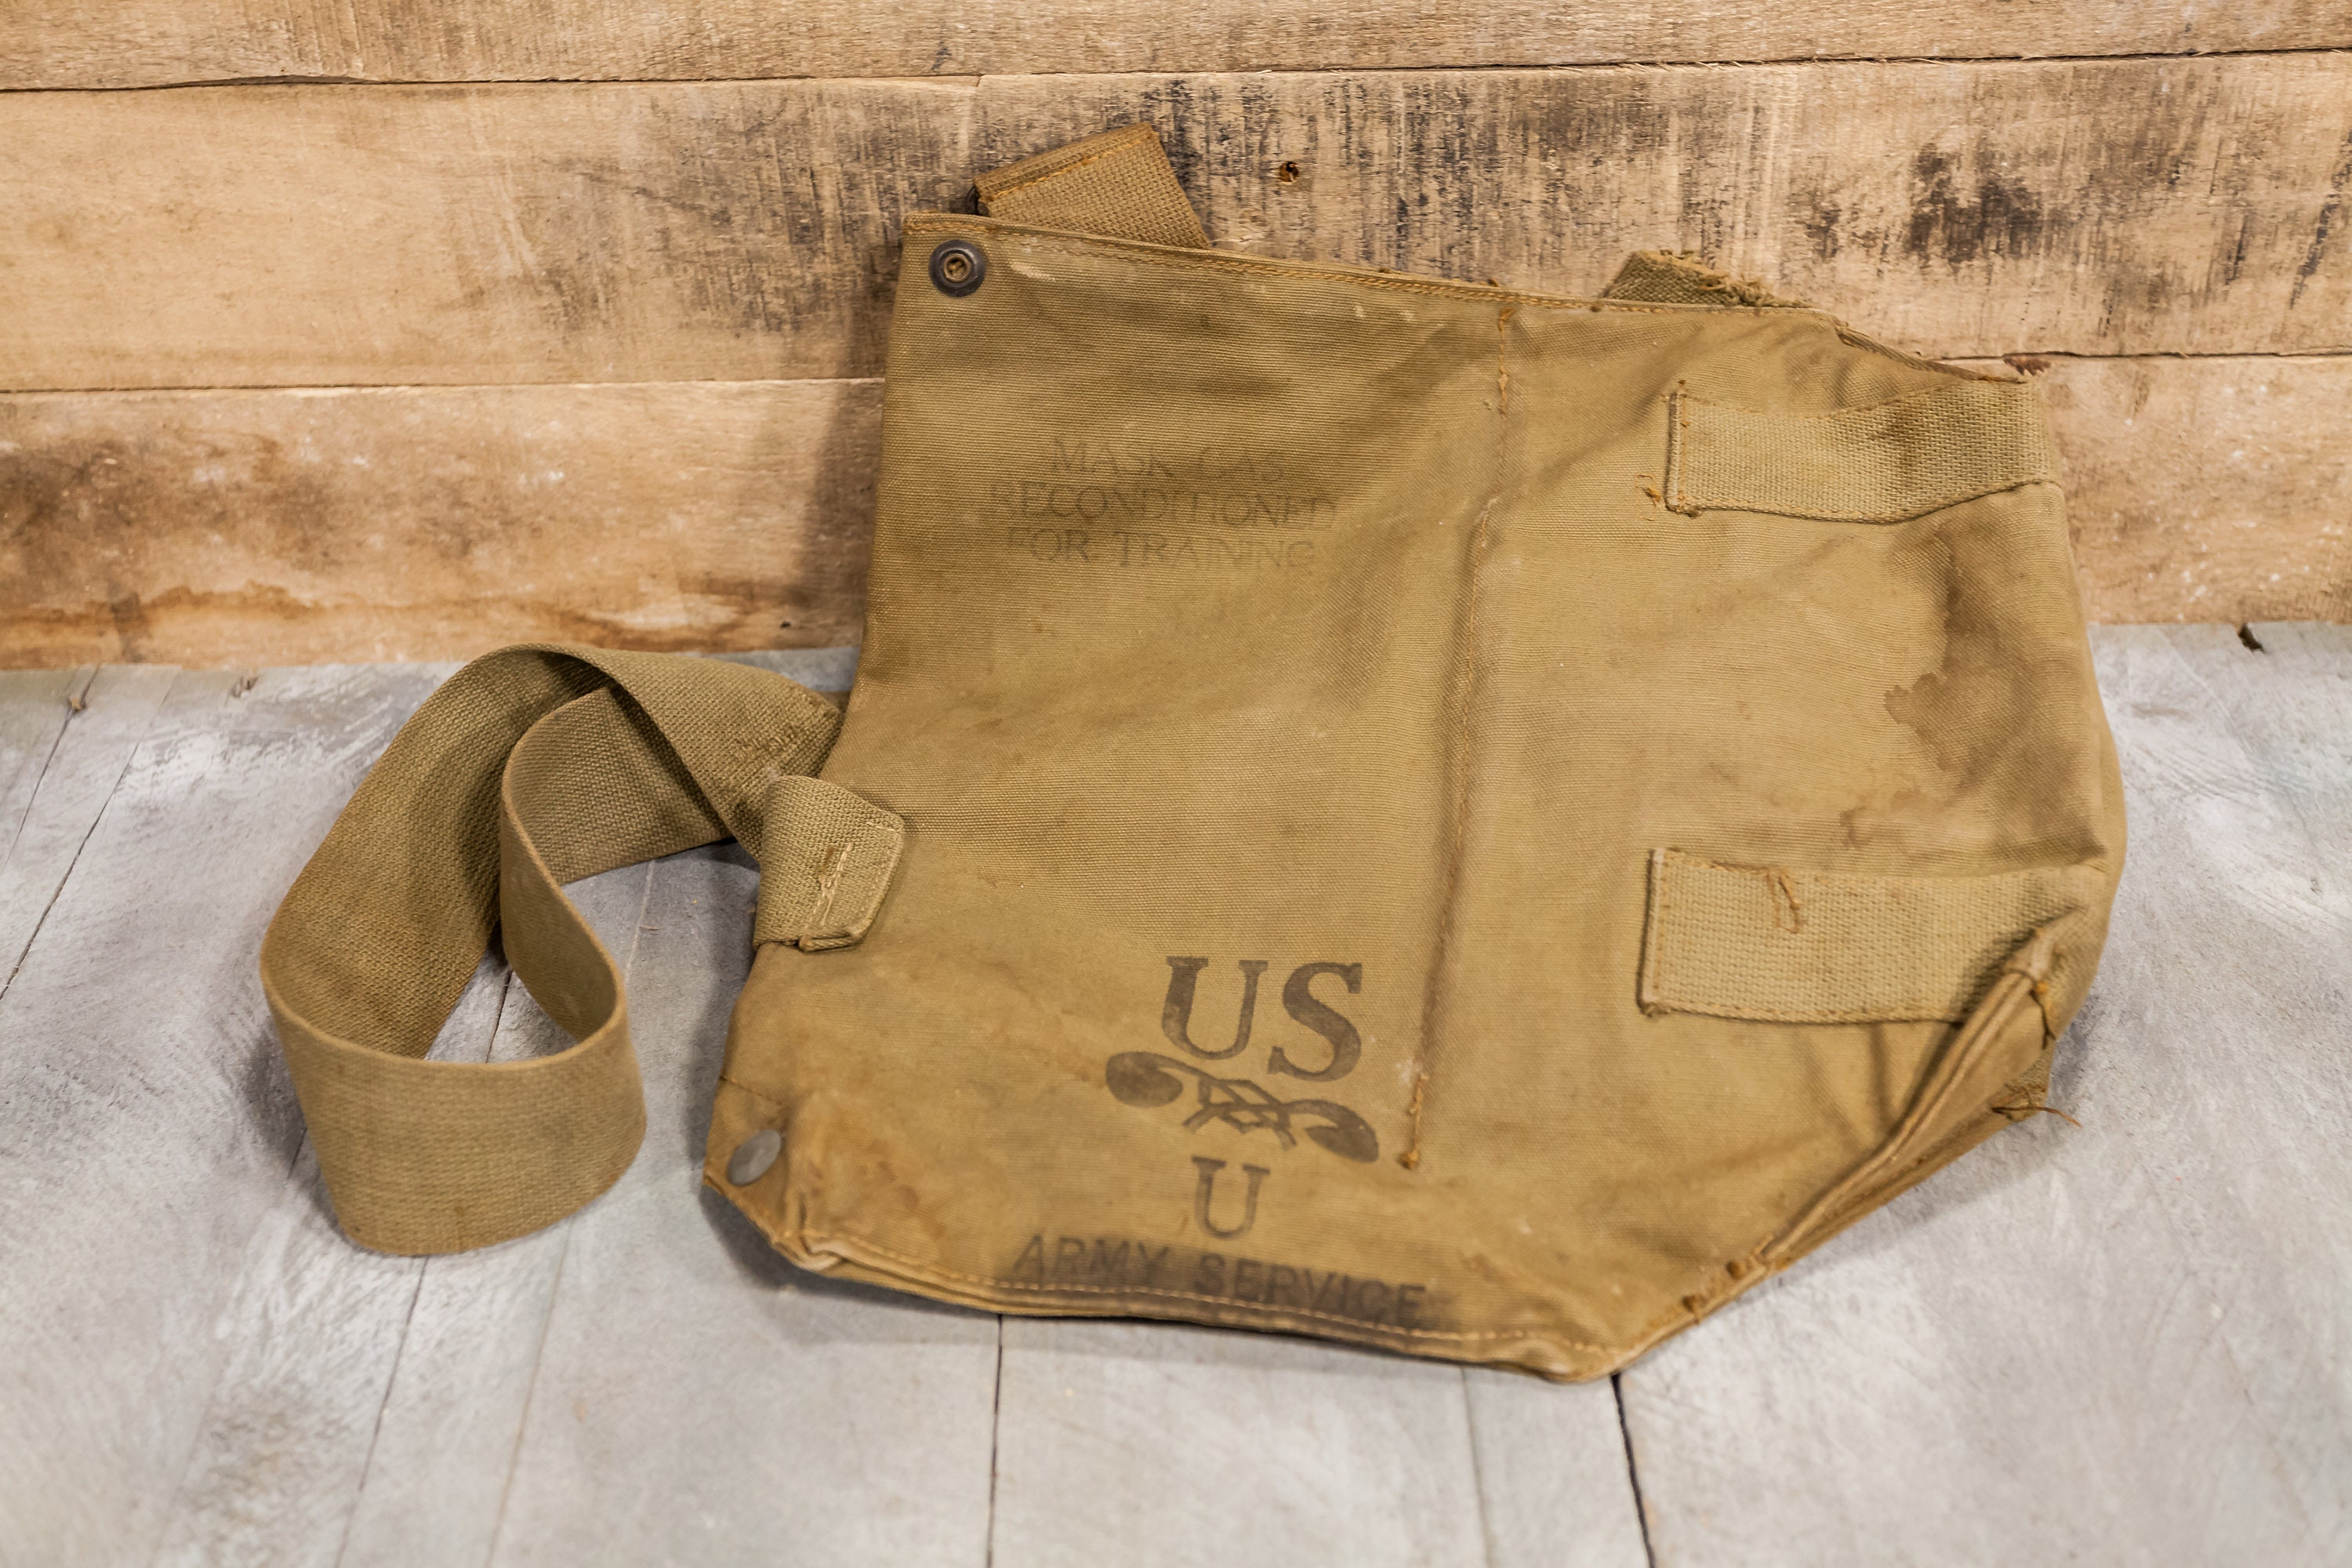 Vintage Military Issued Gas Mask Bag US Military Duffle Bag Large ... 05d9a6ded737f